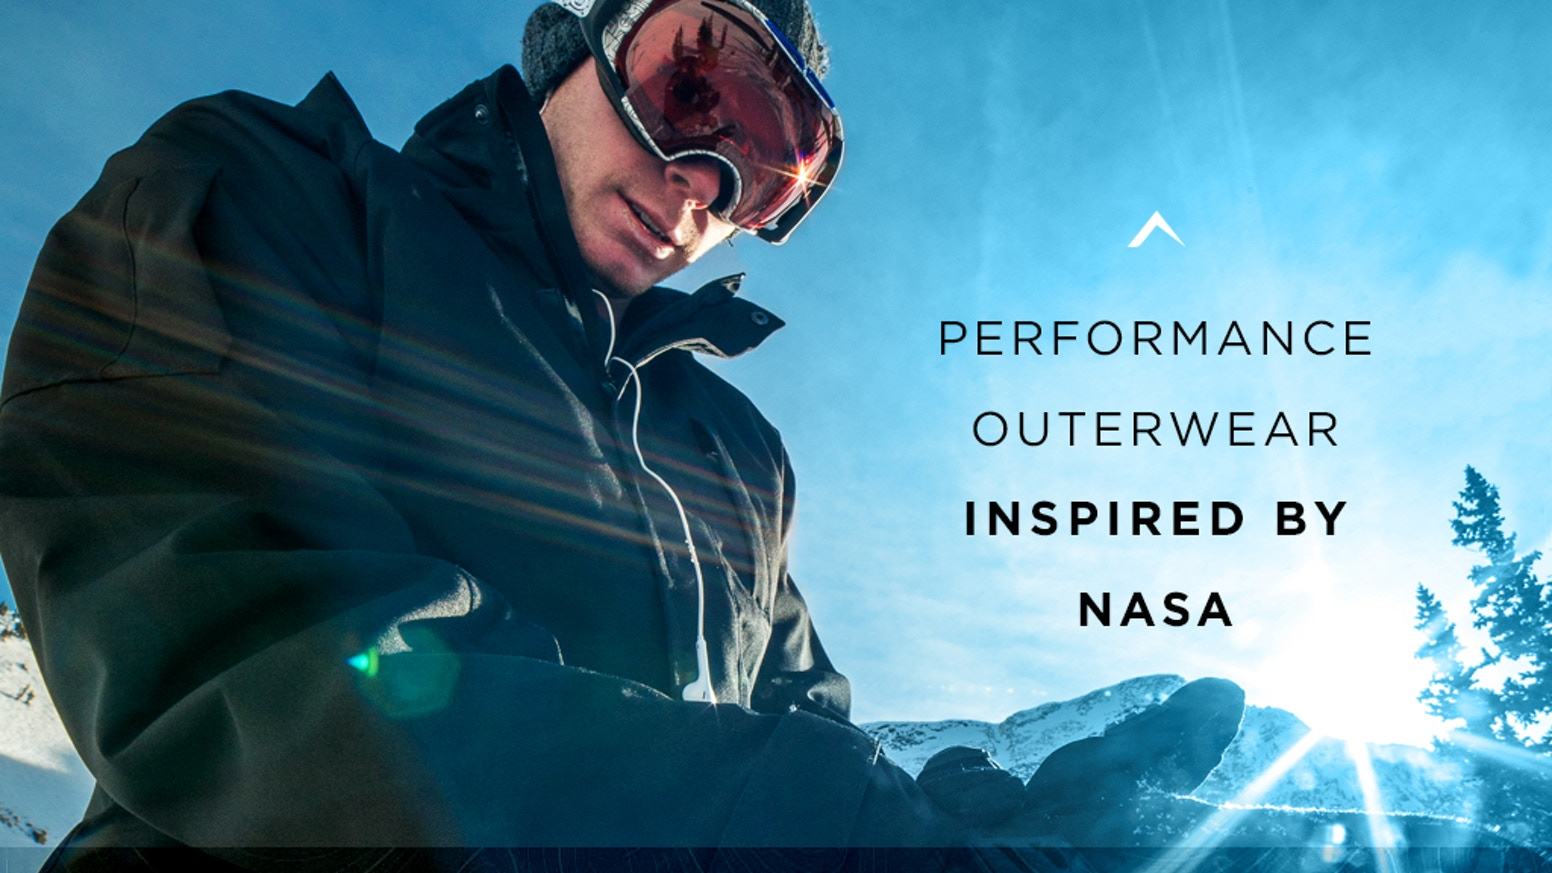 Using NASA space suit technology, OROS brings you awesome performance outerwear. Thin and warm. No compromises.